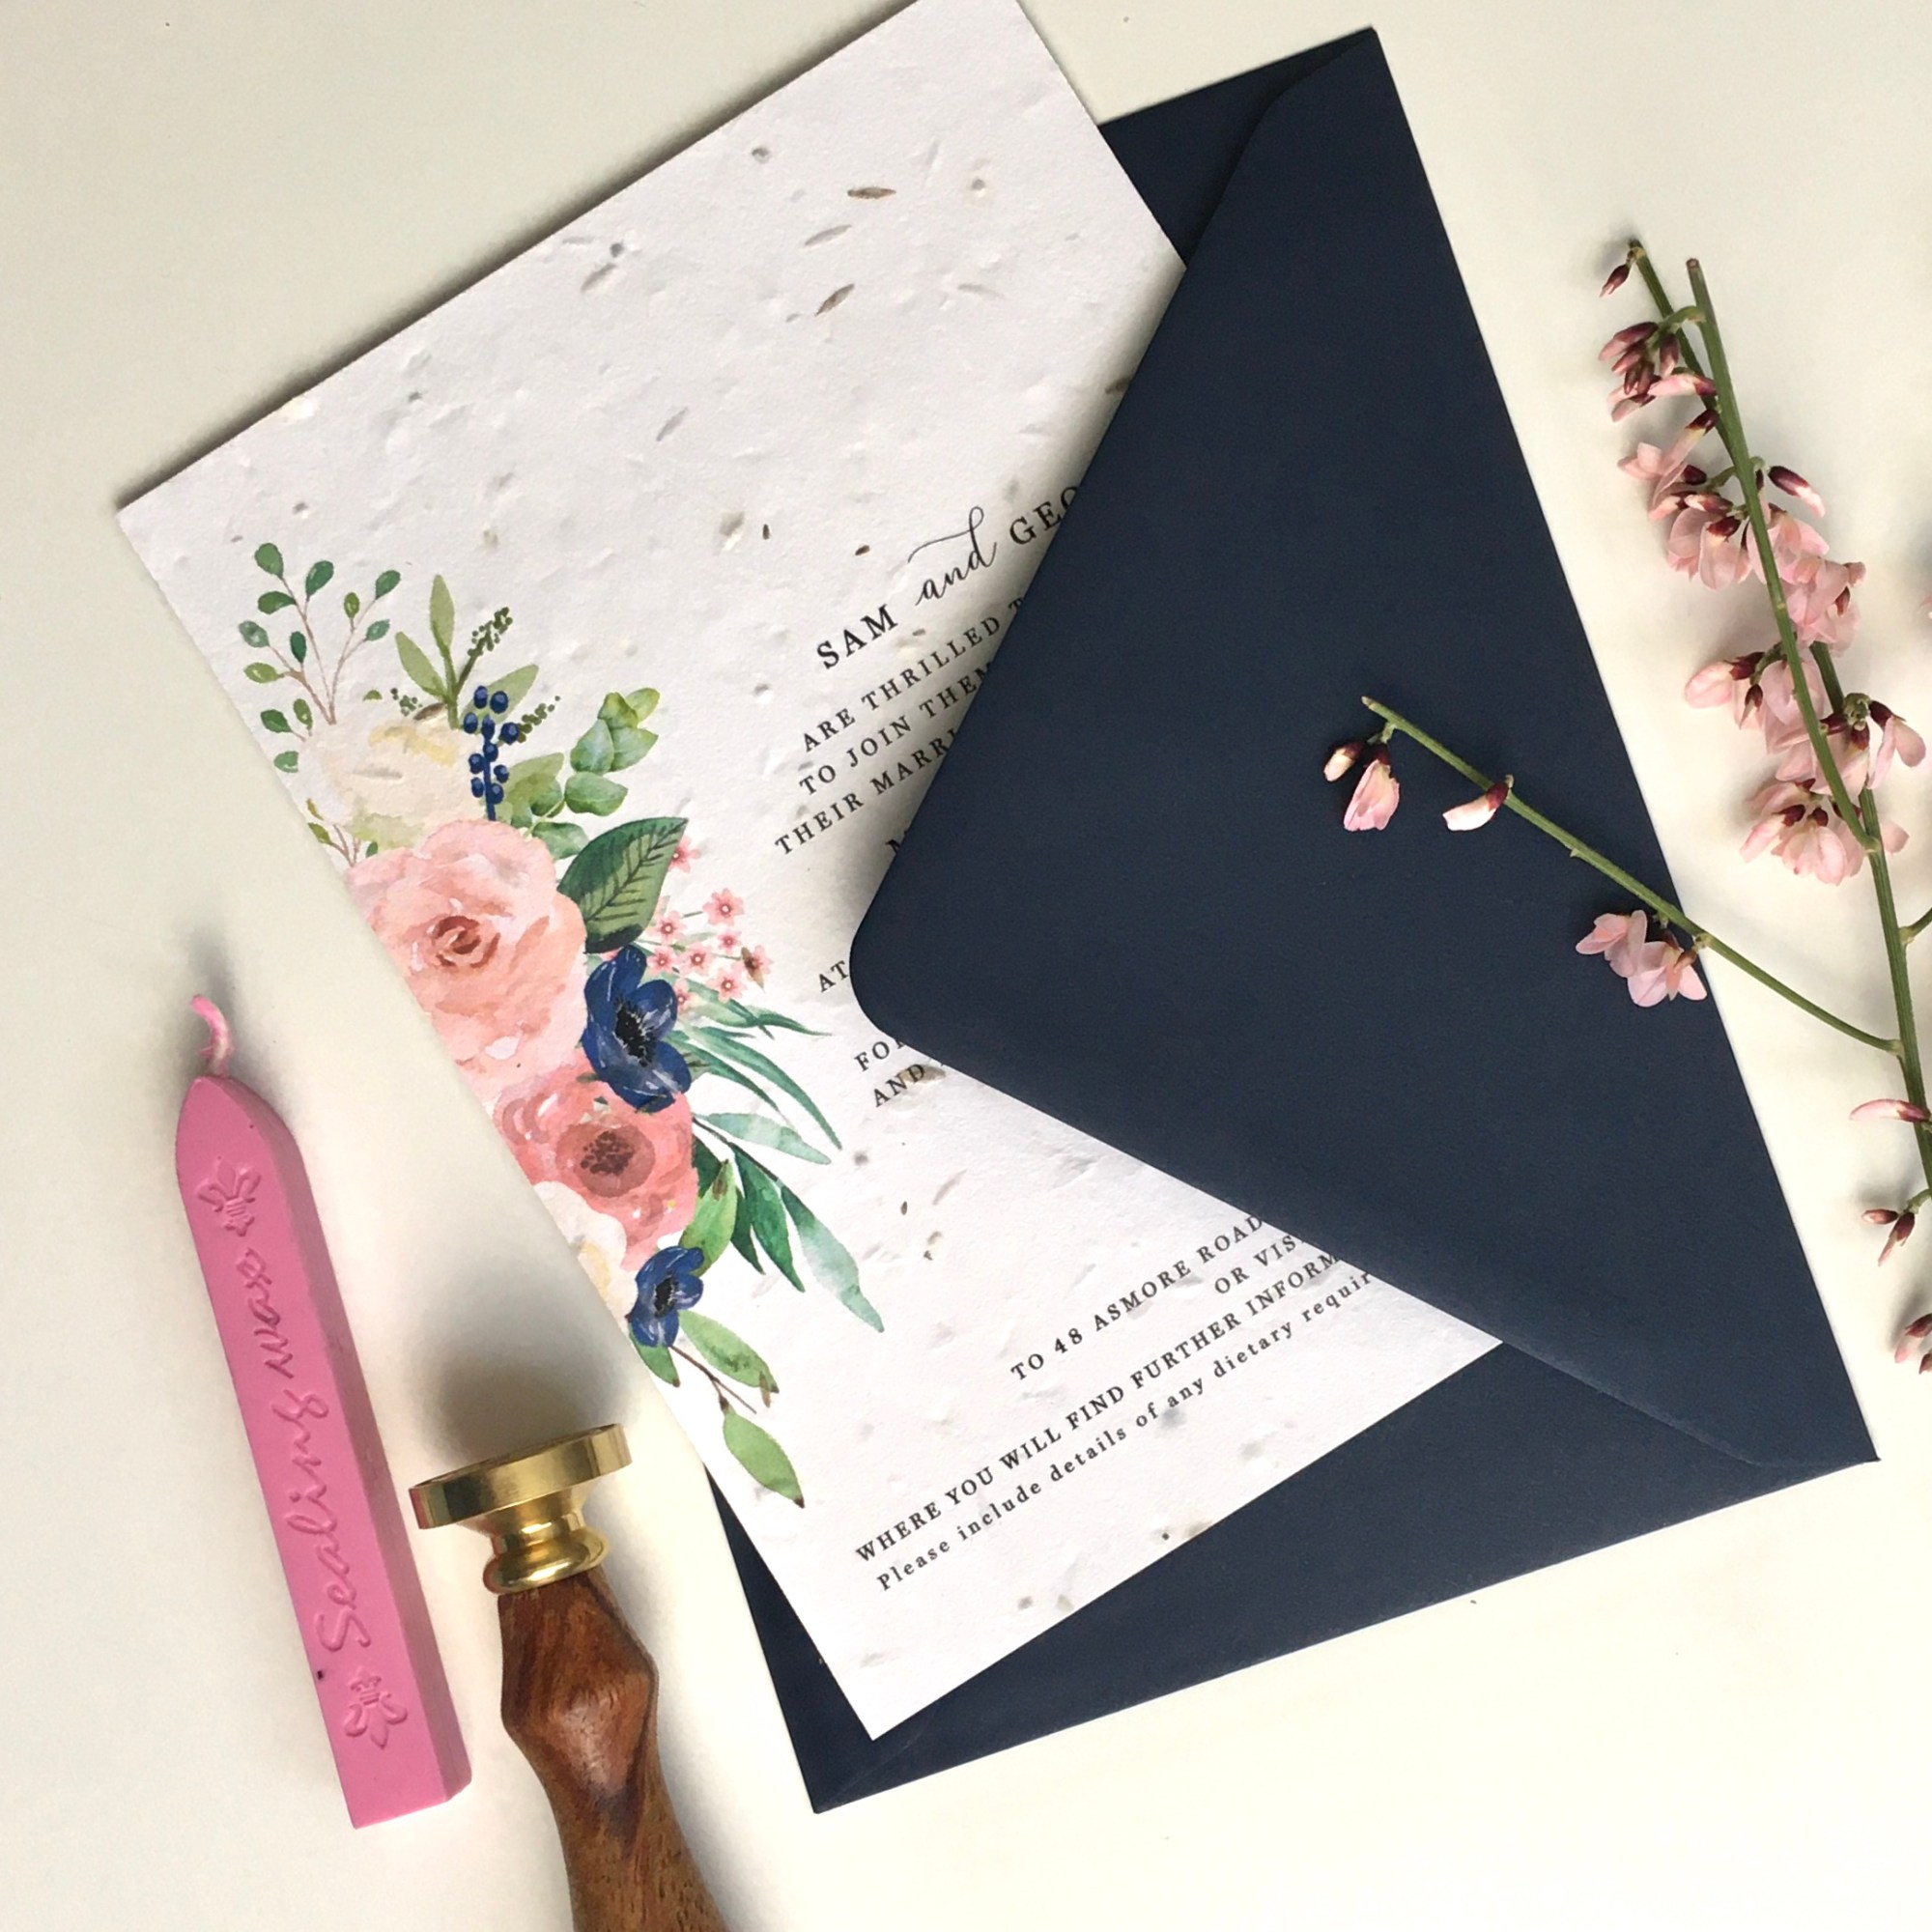 navy, blue, blush, boho, simple, foliage, green, pink, wedding, seed paper, invitation, invites, invitations, eco, recycled, Cornwall, Cornish, stationery, Laura Likes